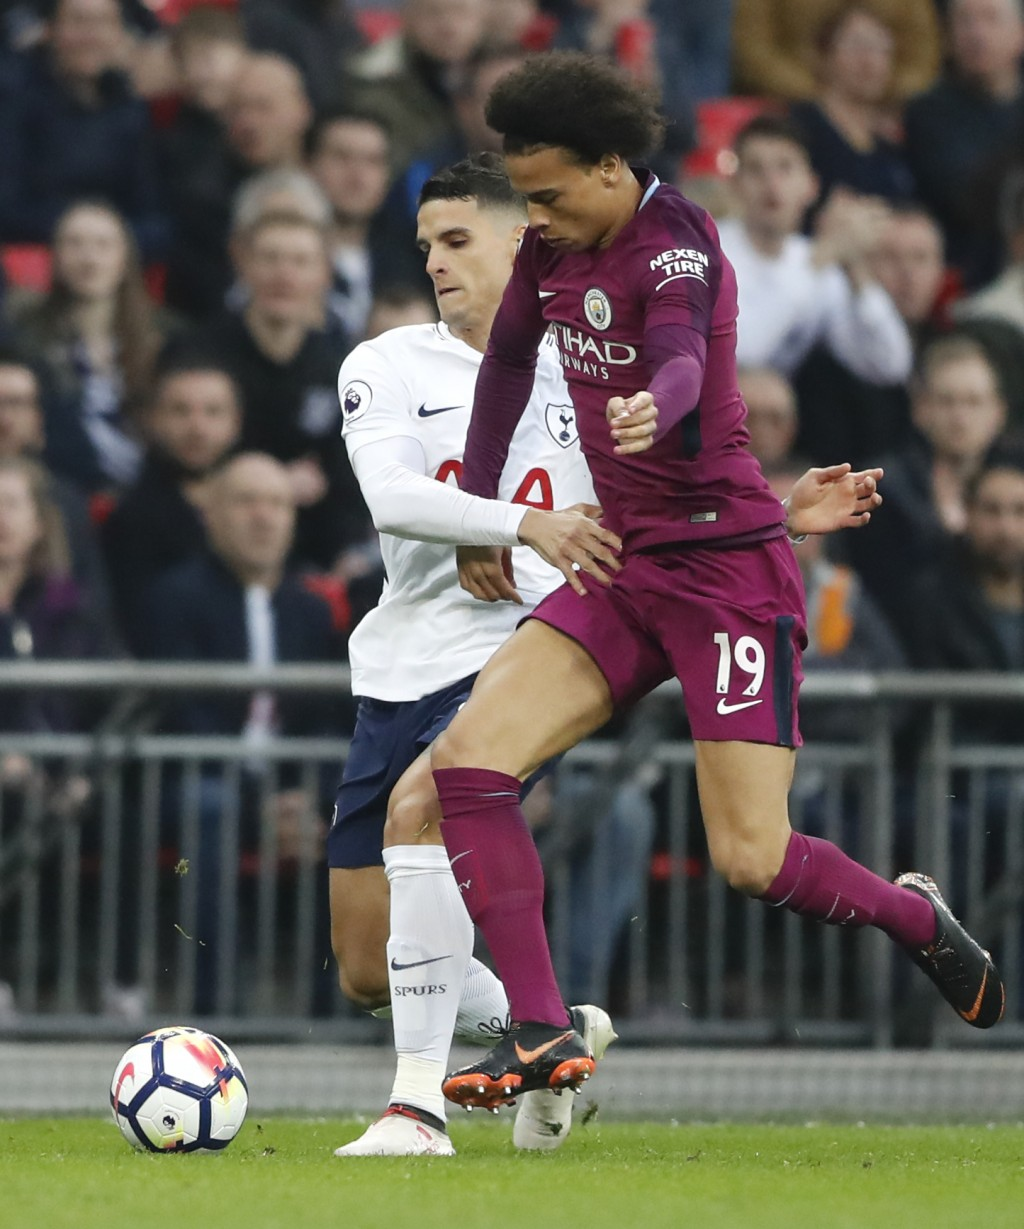 Tottenham's Erik Lamela, left, battles for the ball with Manchester City's Leroy Sane during the English Premier League soccer match between Tottenham